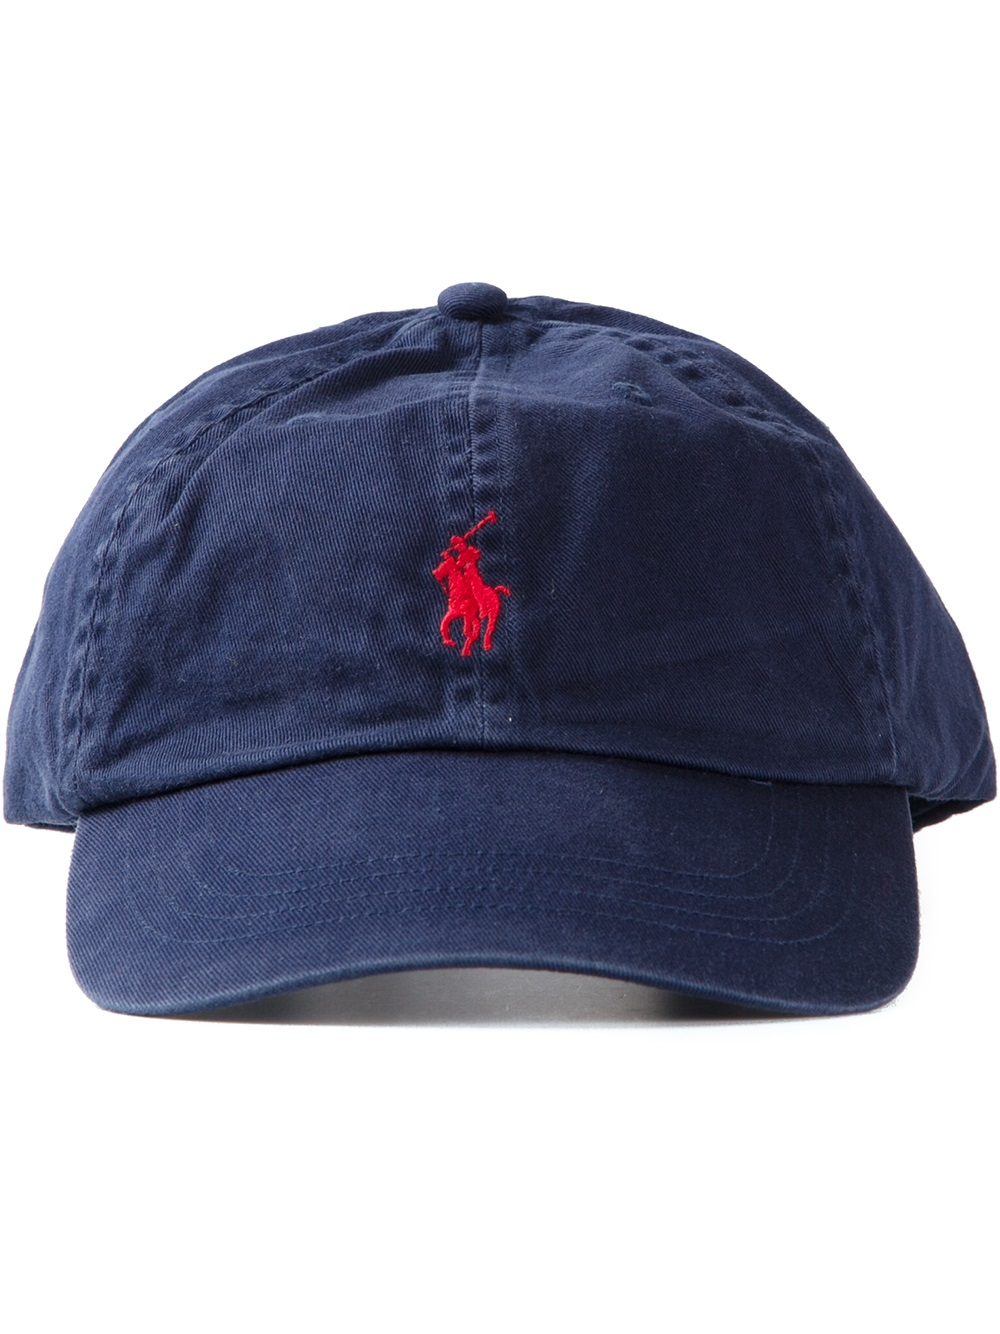 polo ralph lauren logo embroidered baseball cap in blue. Black Bedroom Furniture Sets. Home Design Ideas